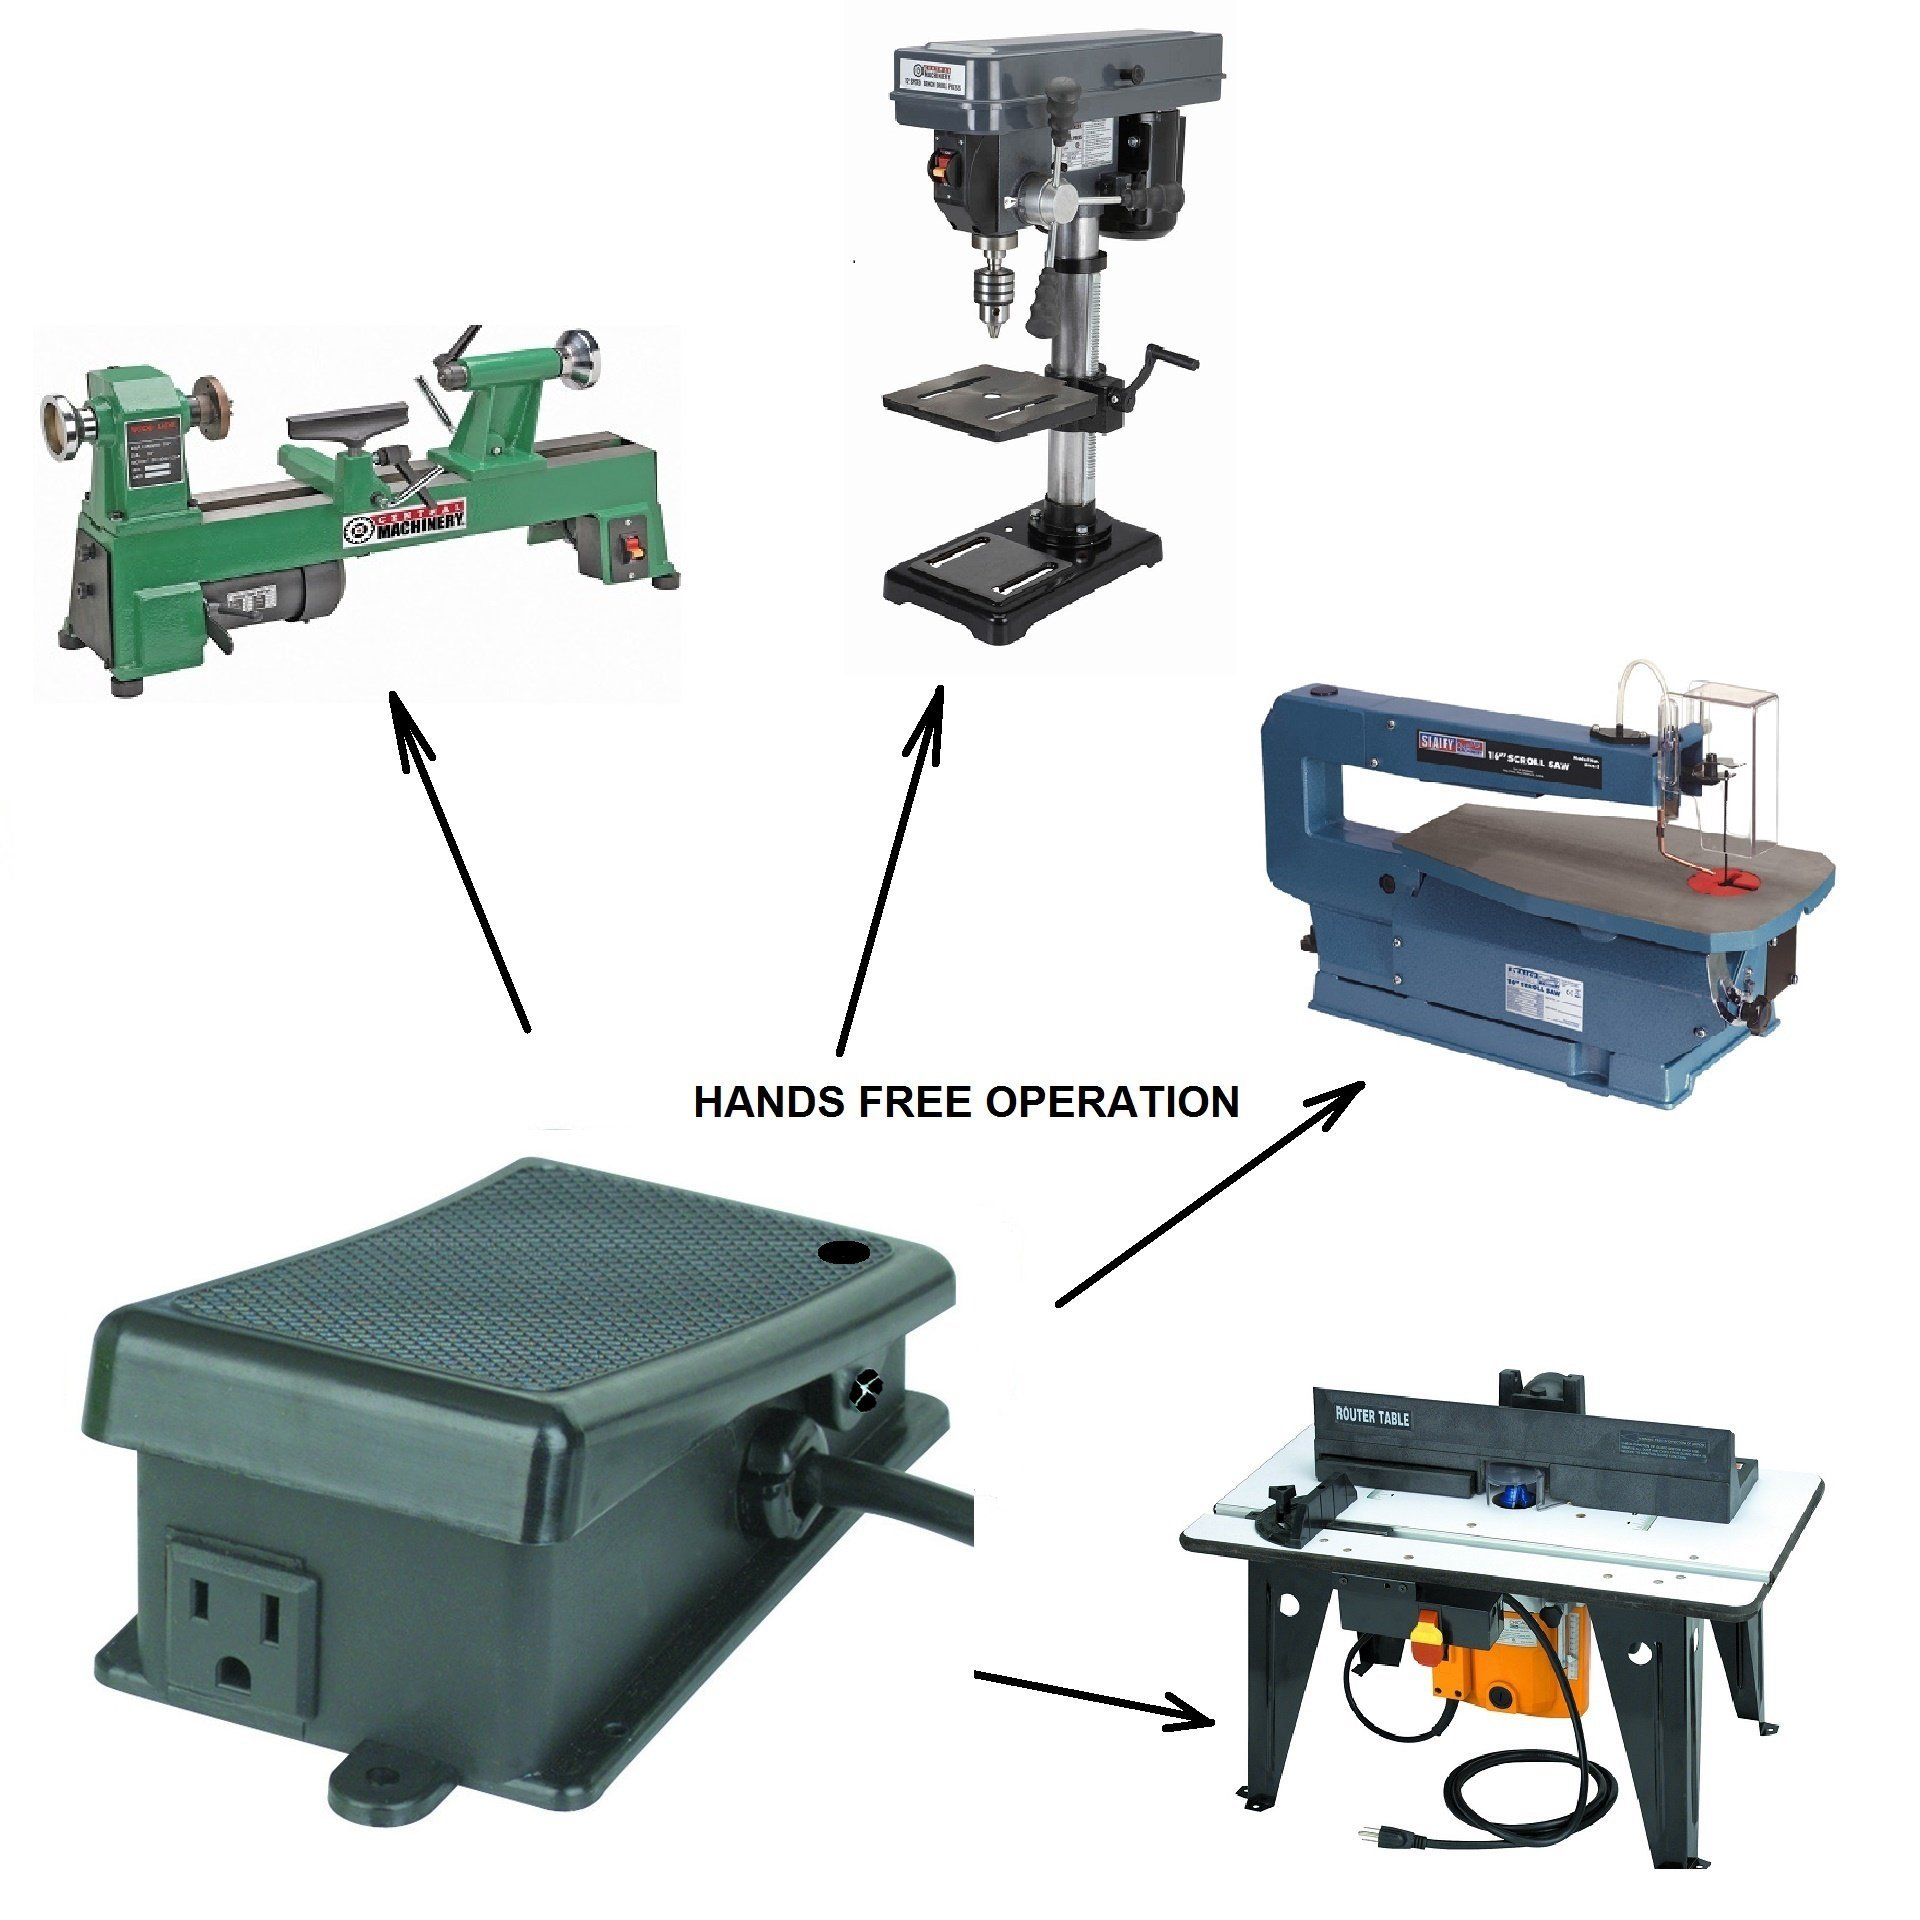 Hands Free Table Routers Scroll Saws Drill Presses Lathes Rotary Tools Operation - Hands Free Electrical Power Foot Switch Pedal